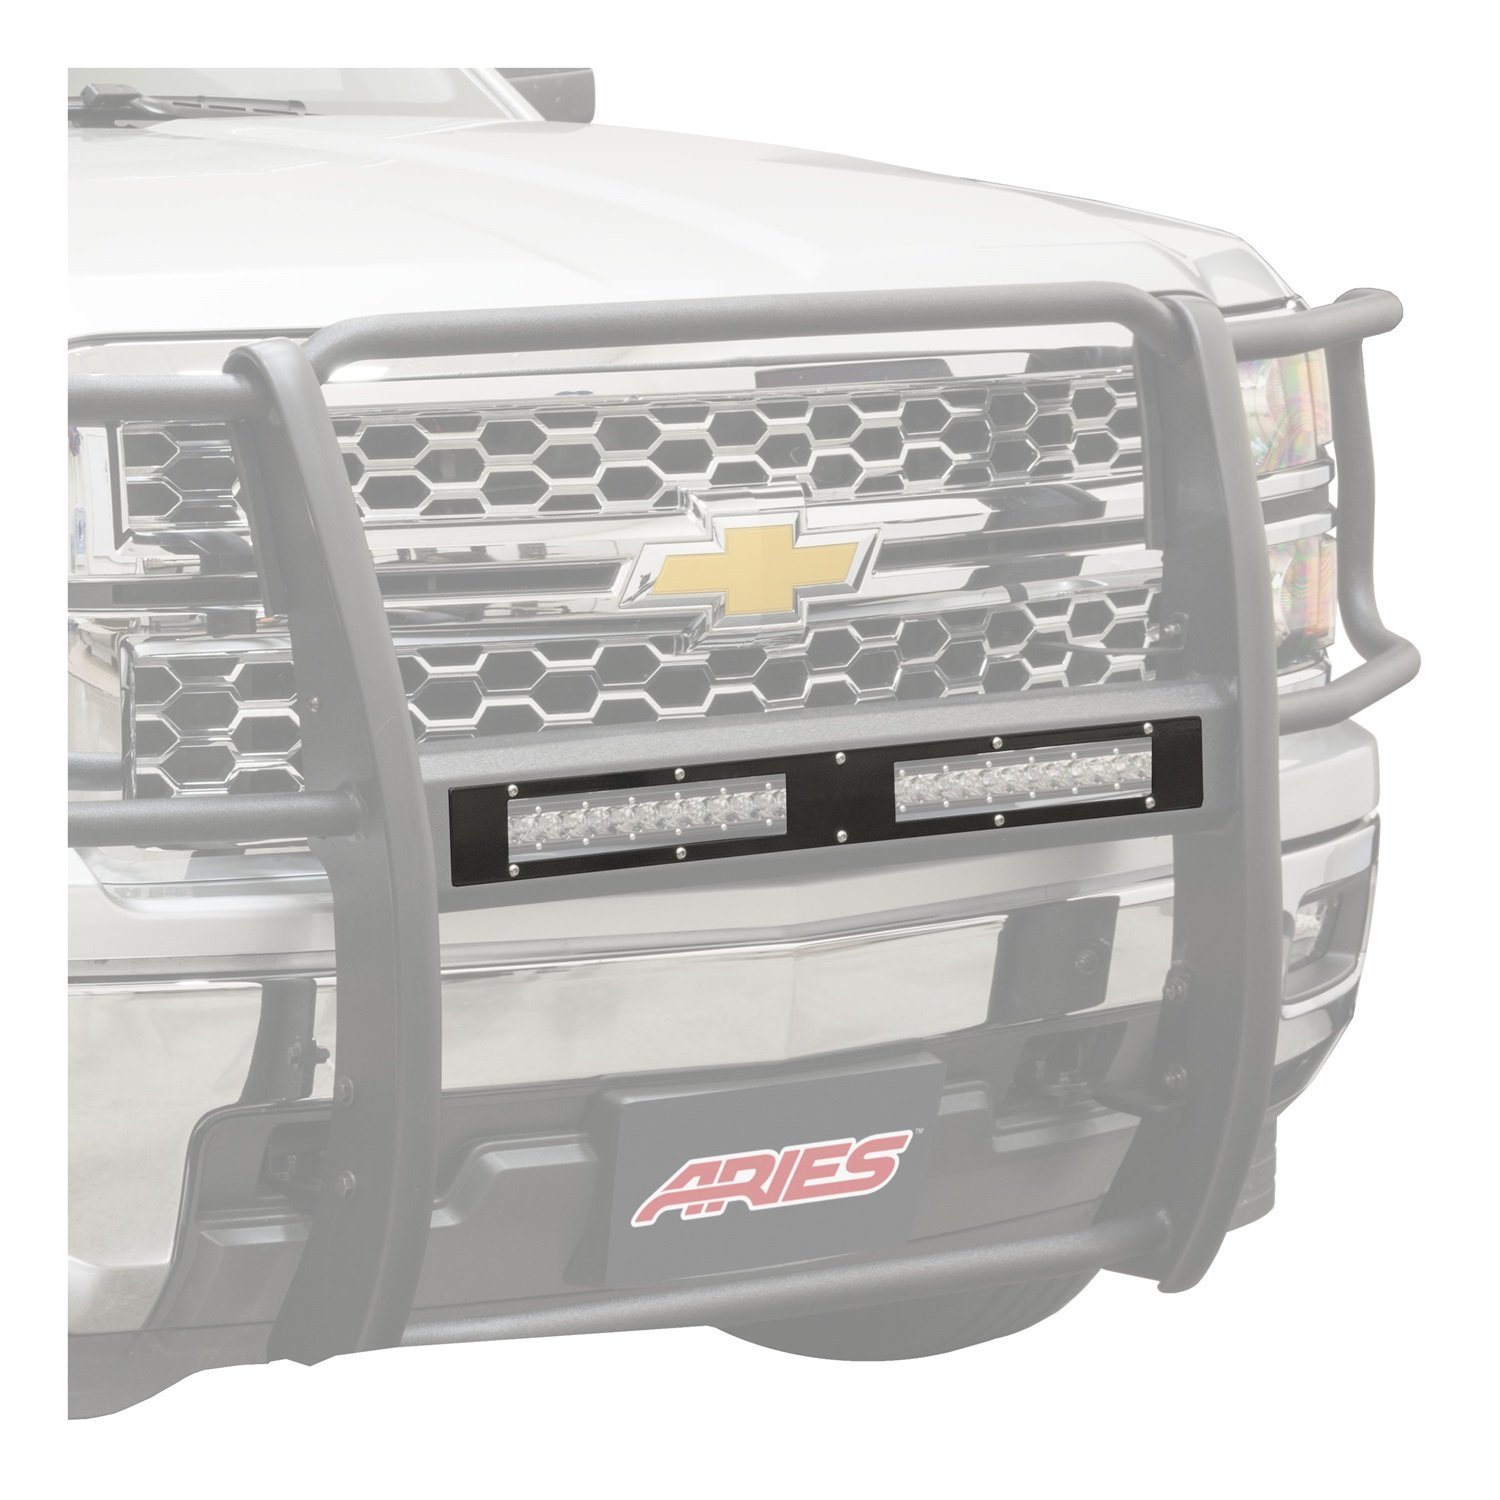 ARIES PC10OB Pro Series Jeep 10 Semi-Gloss Black Steel Grille Guard Cover Plate